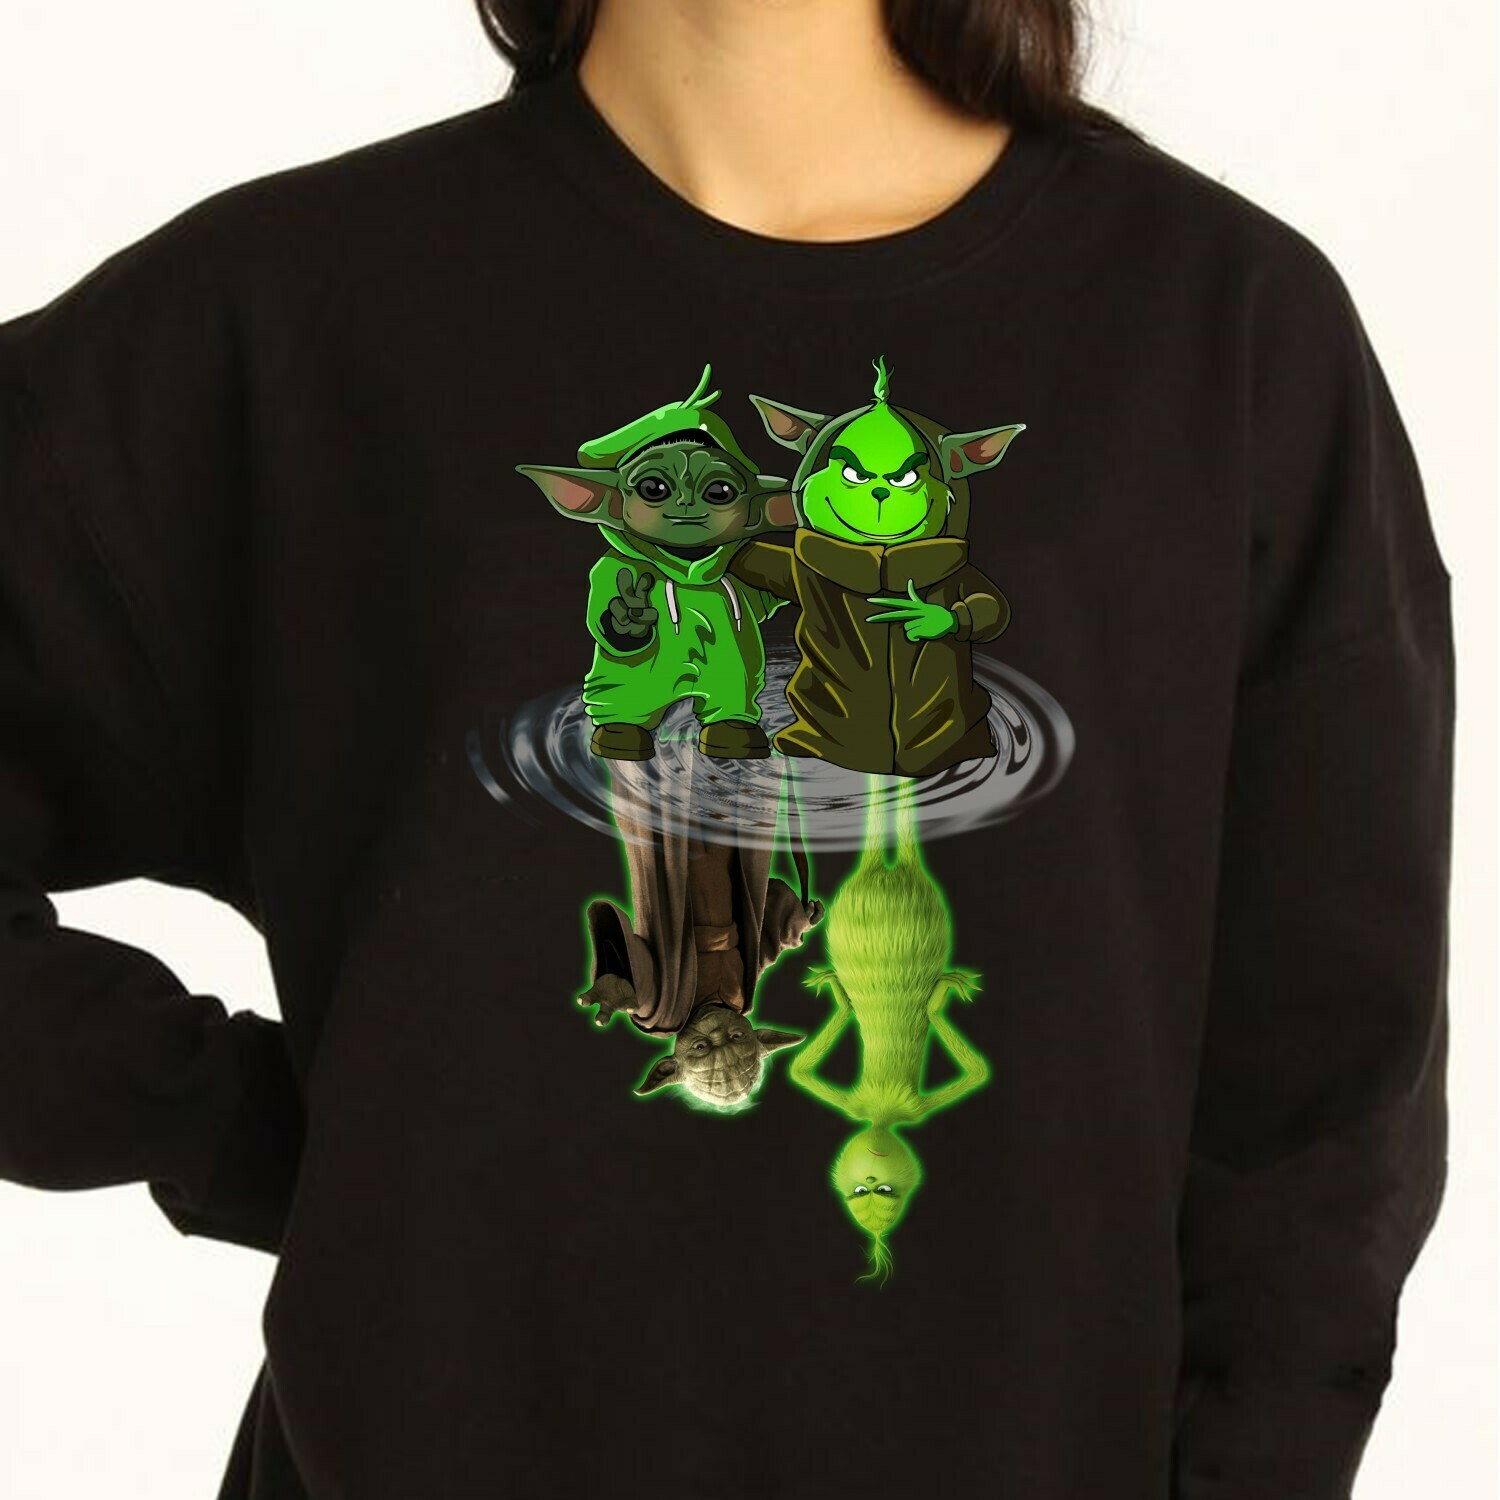 Baby Yoda Grinch and Master Yoda Grinch Water Reflection Apparel Mandalorian Star wars reflect Grinch hand holding Baby Yoda Christmas Shirt Long Sleeve Sweatshirt Hoodie Jolly Family Gifts